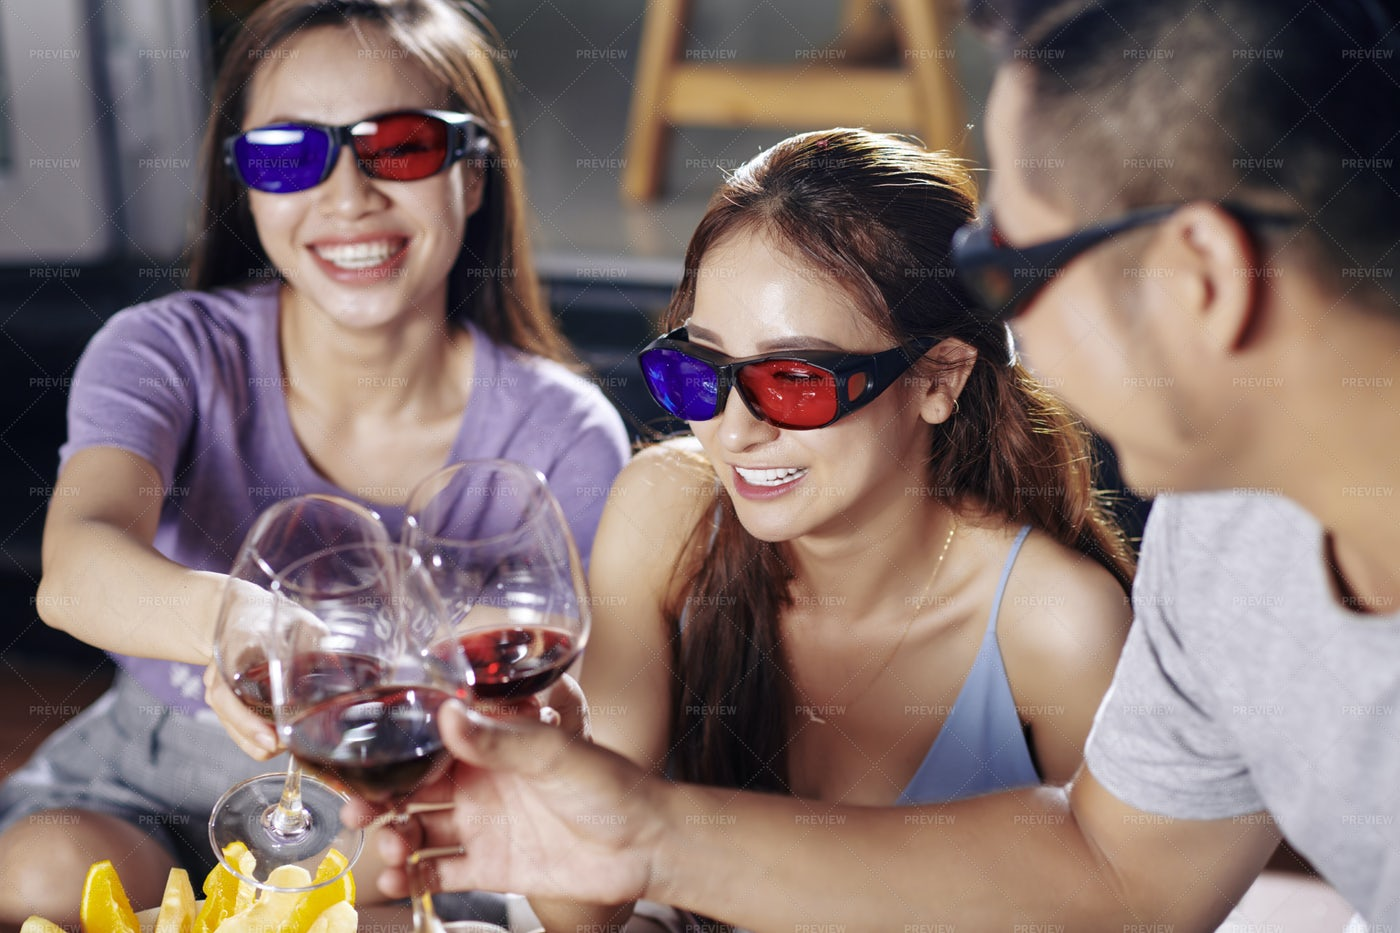 Friends Watching Movie And Drinking: Stock Photos